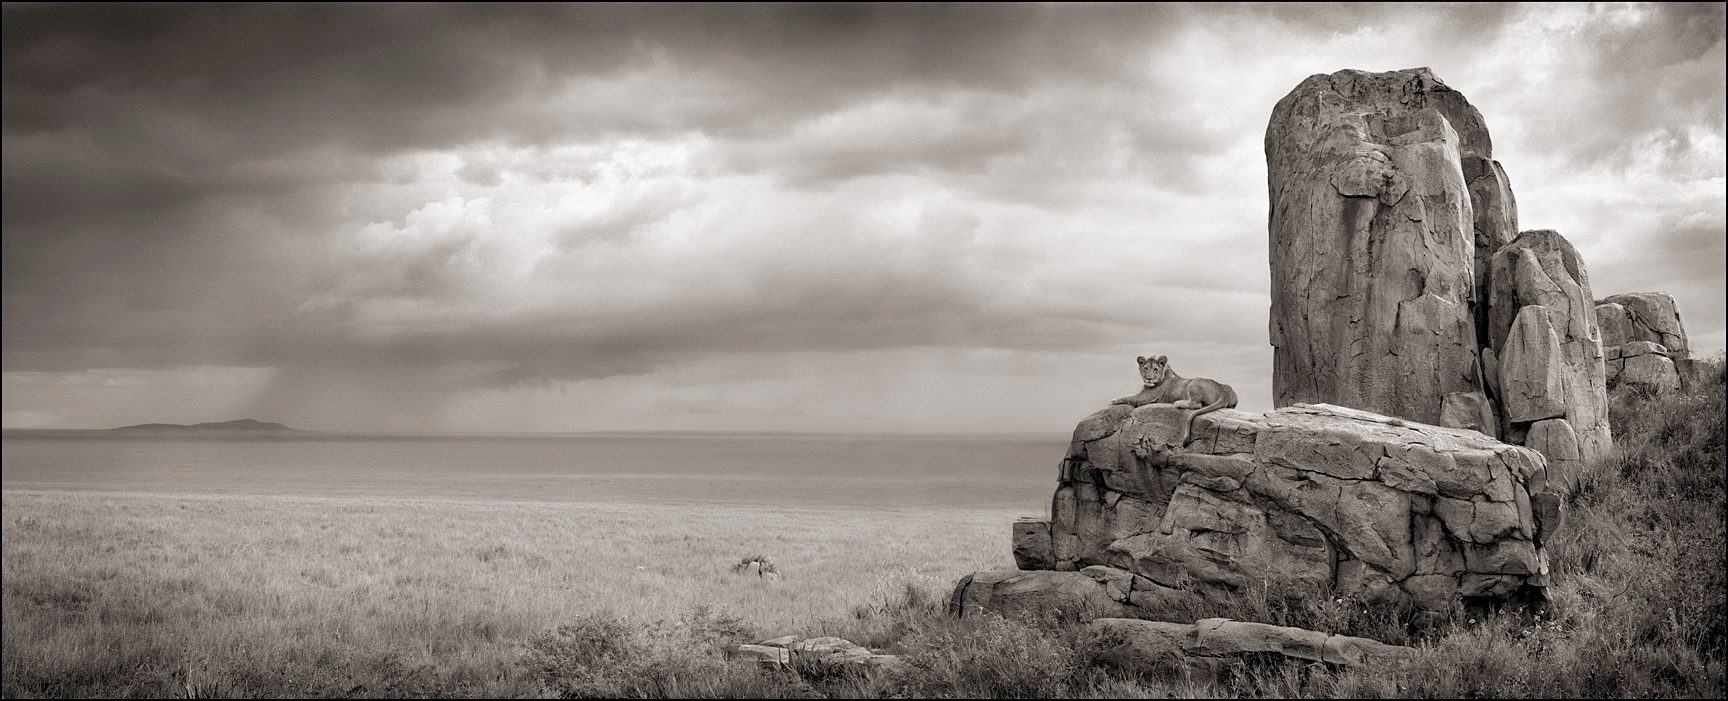 Lion with Monolith, Serengeti